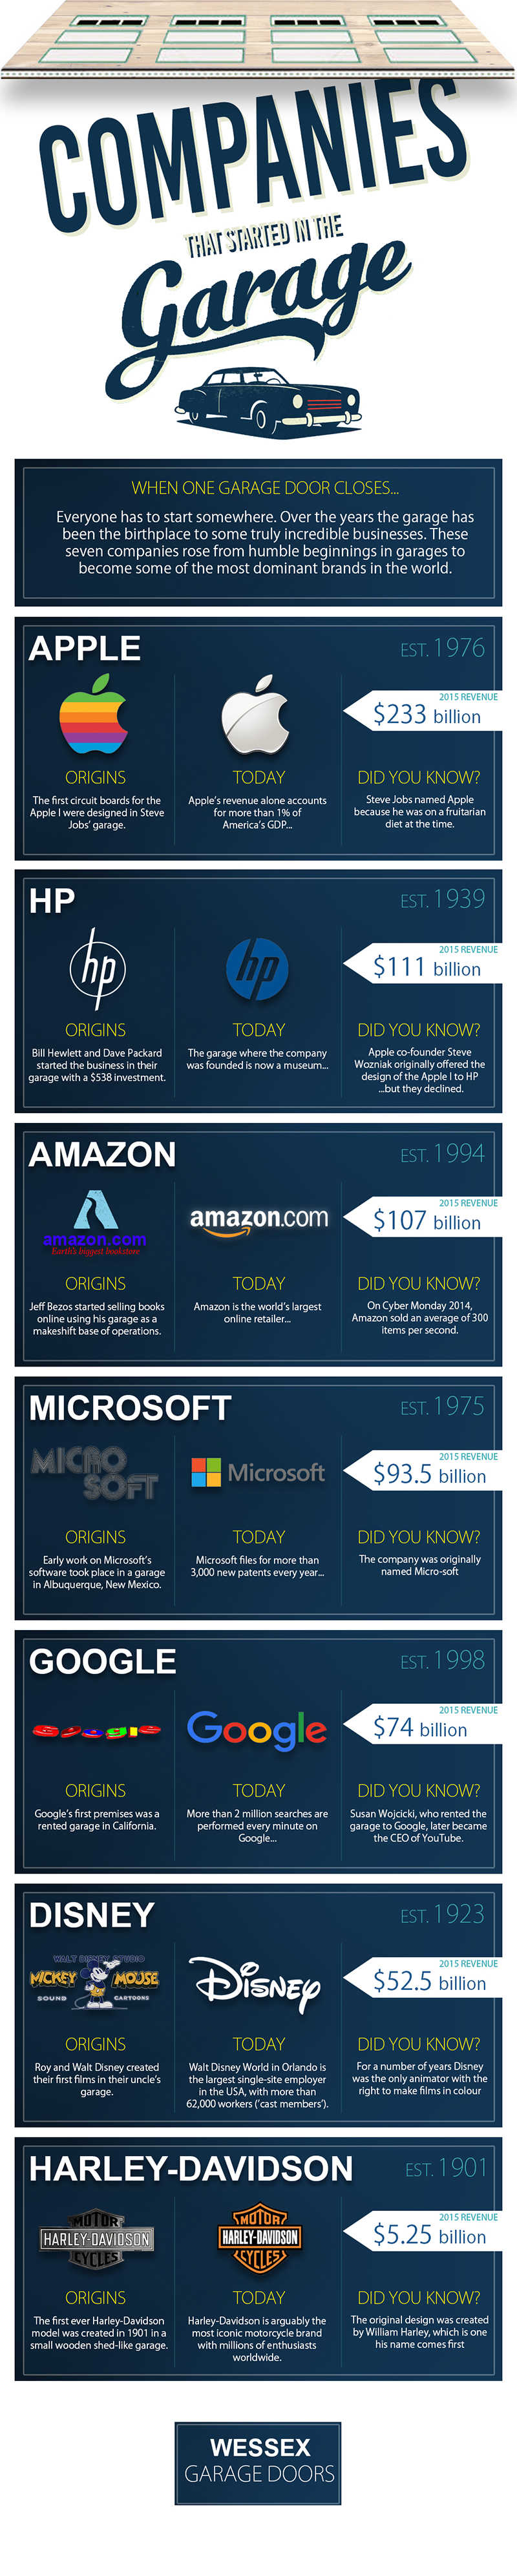 Companies that Started the Garage Infographic